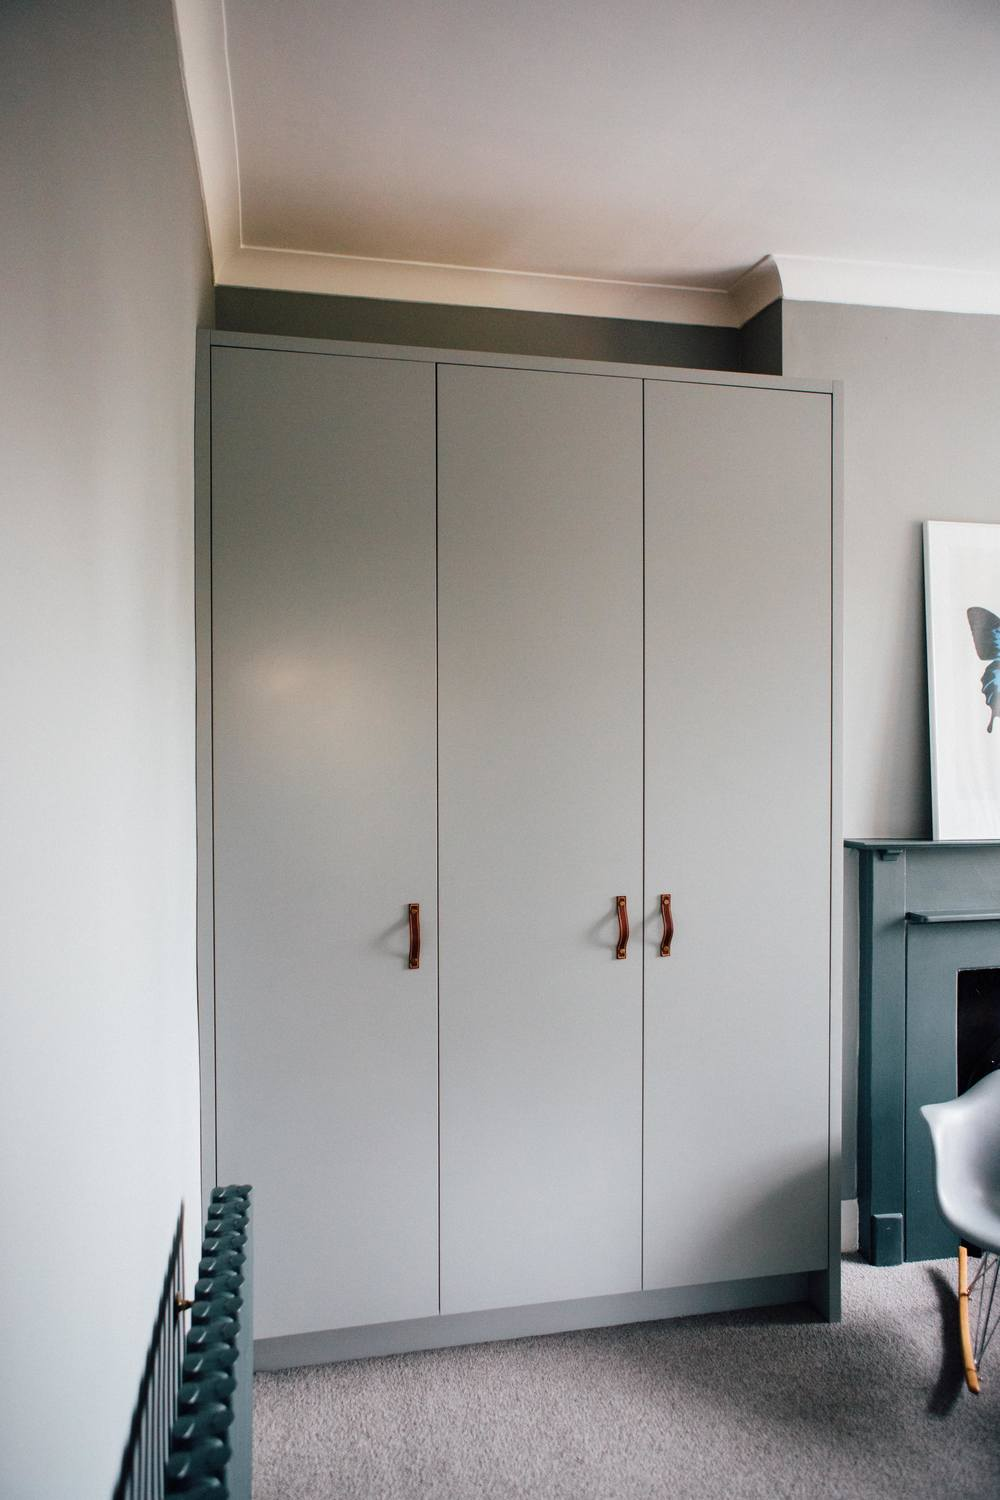 Carpenter Herne Hill Bespoke Wardrobe - West & Reid